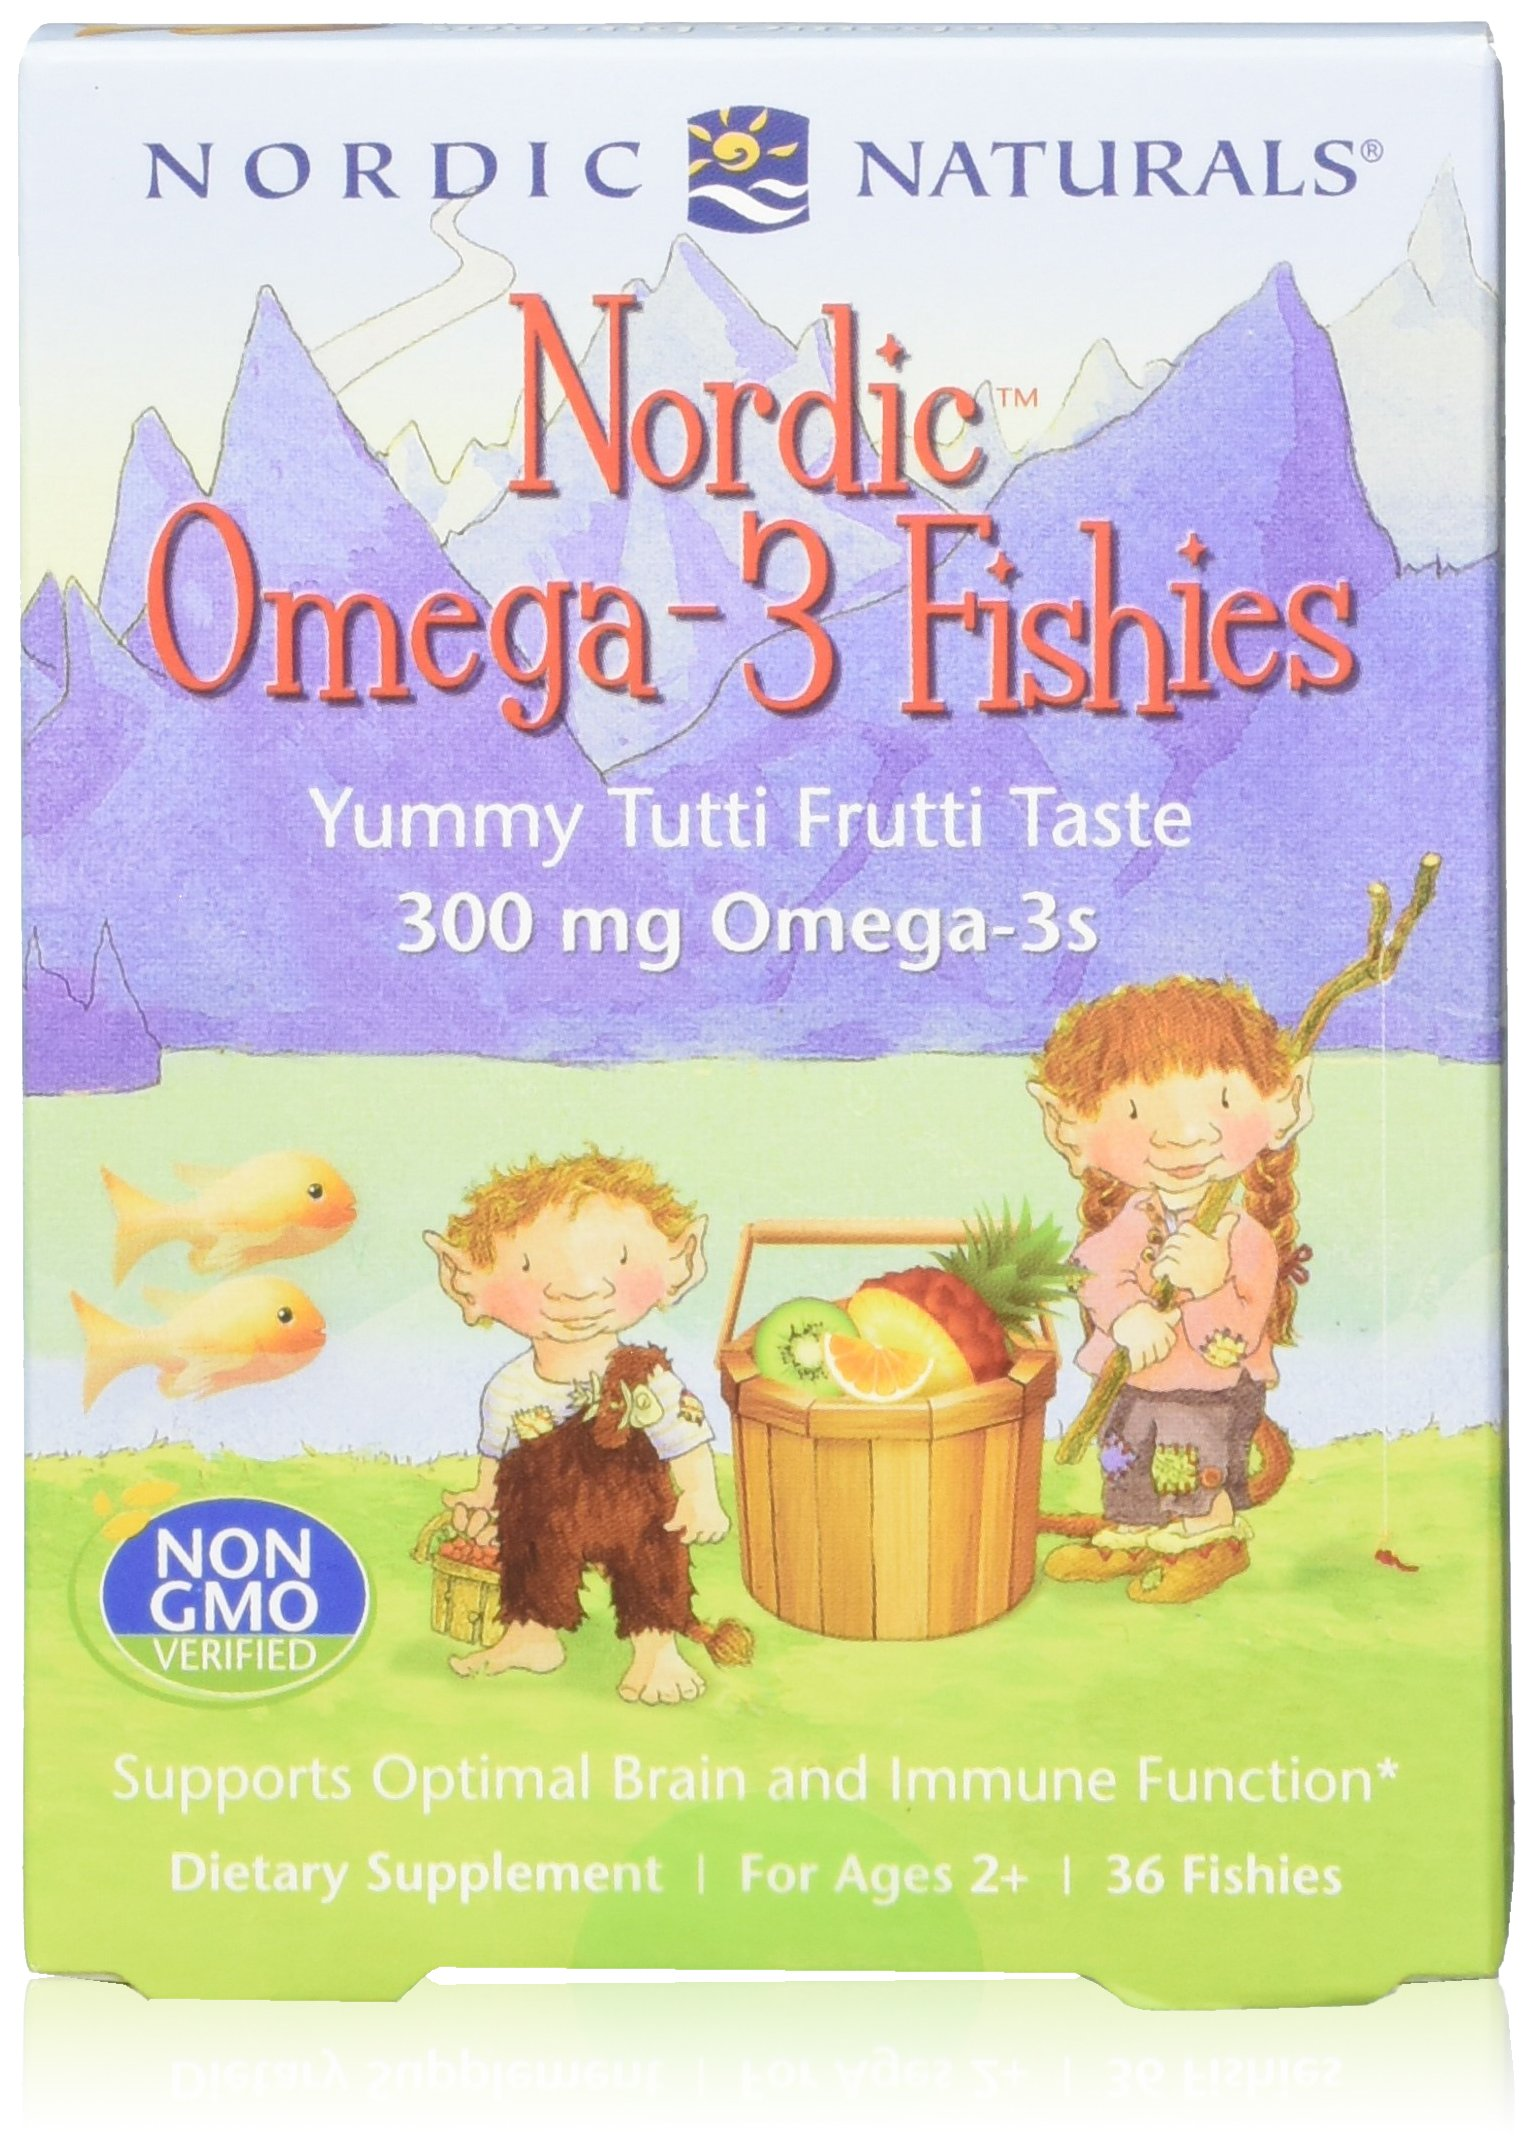 Nordic Omega-3 Fishies, 36 Fishies 2-pack by Nordic Naturals